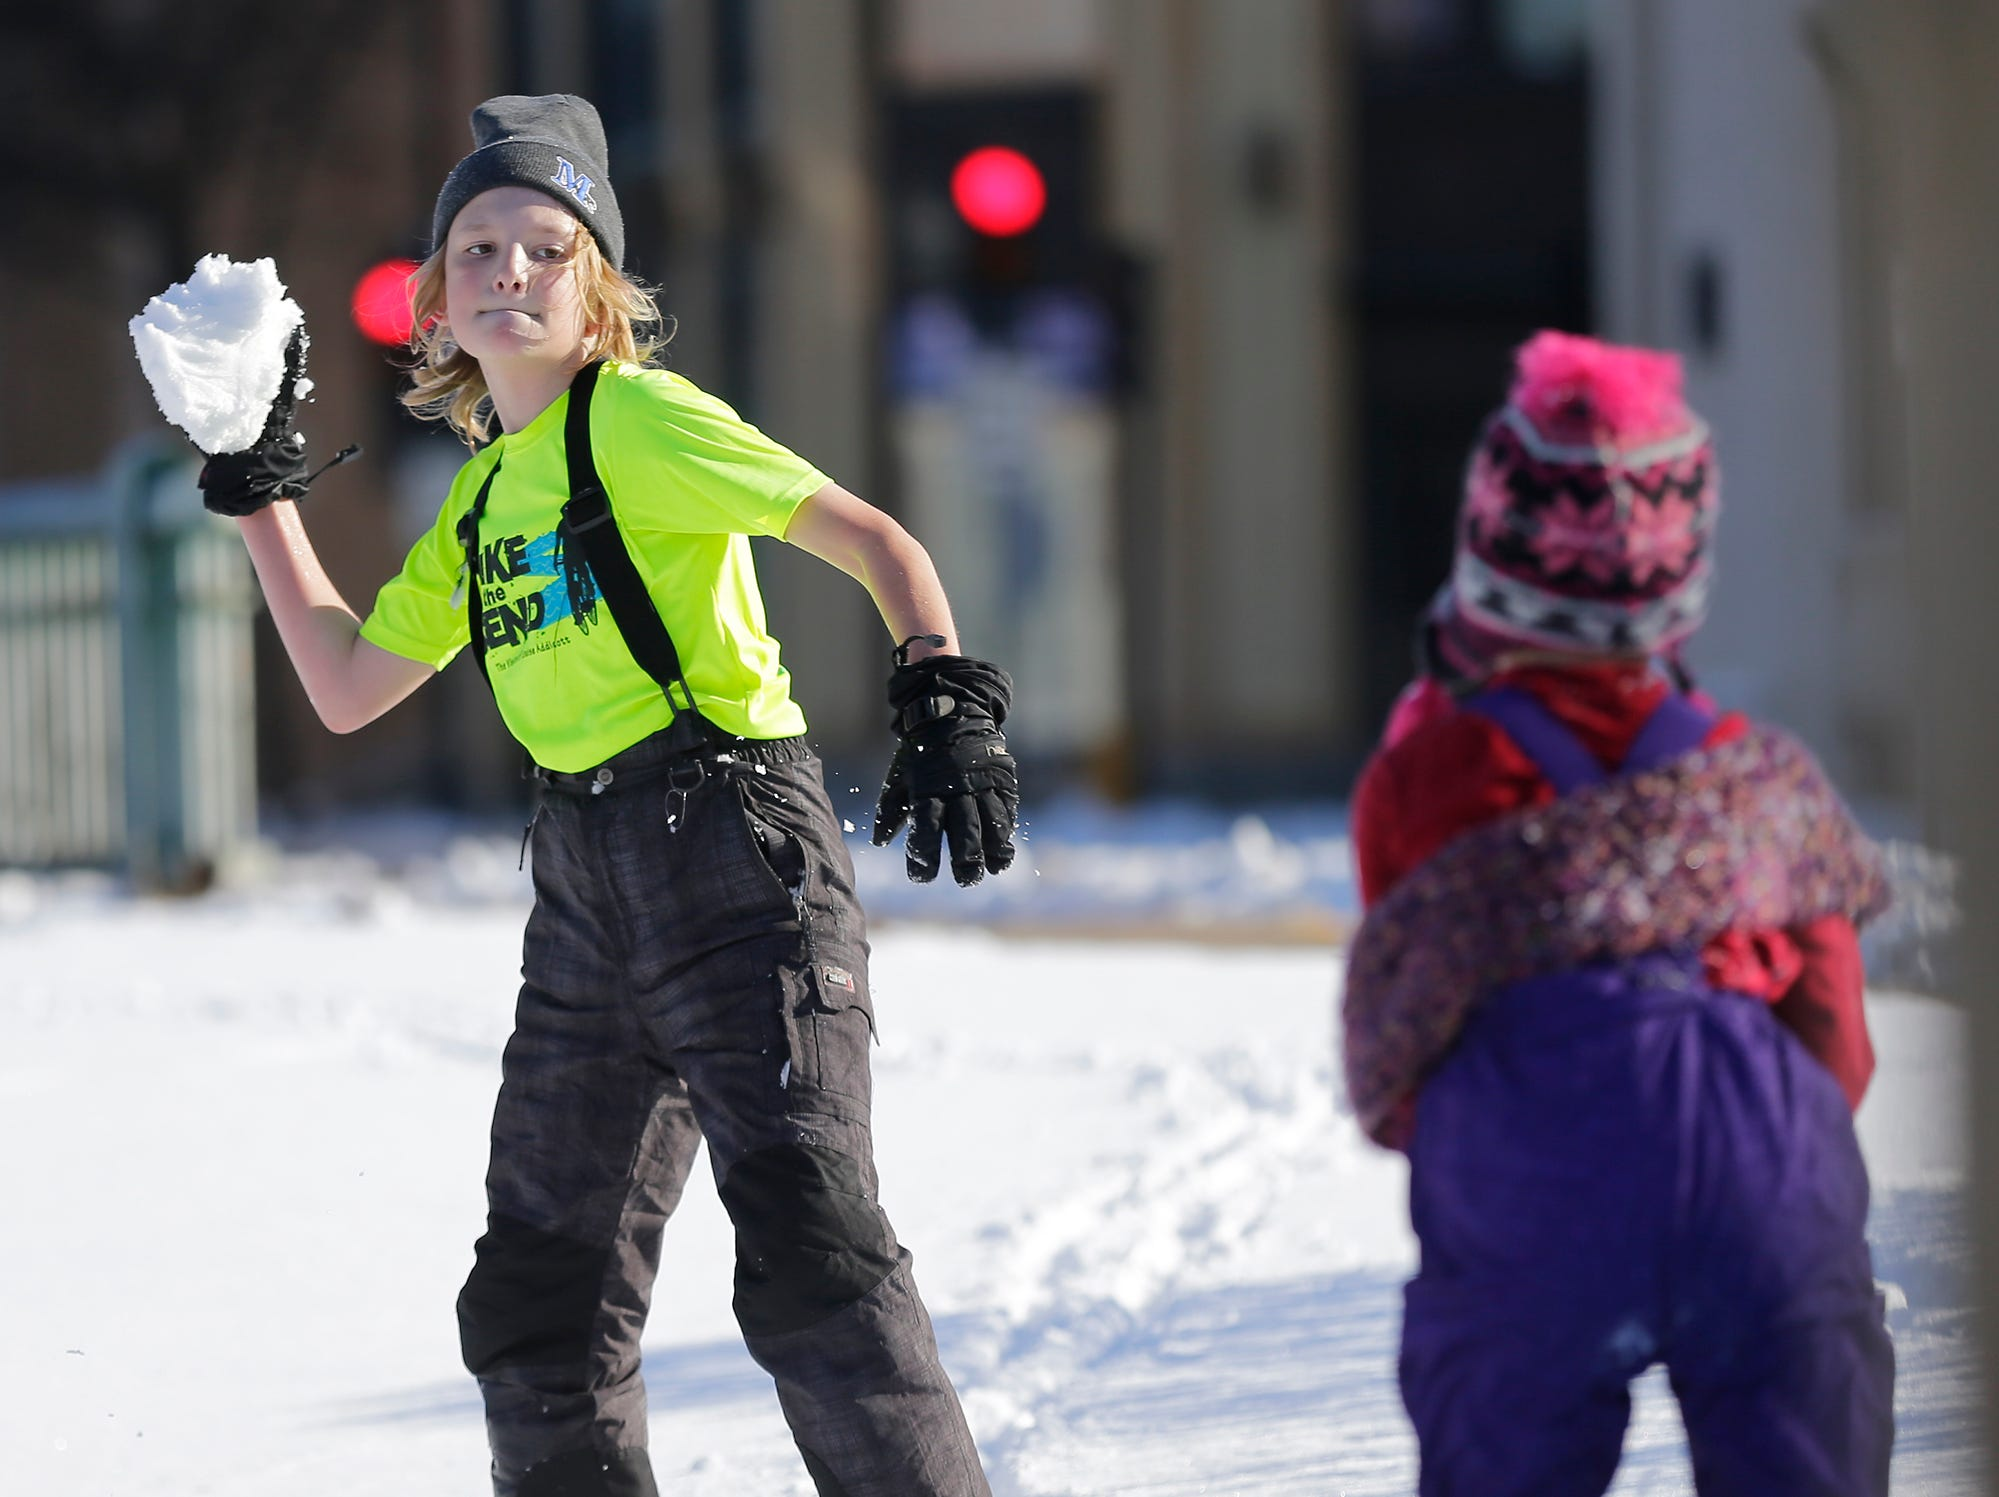 Miles Krikau winds up to throe a snowball at Winterfest Saturday, January 5, 2019 at Hamilton park in Fond du Lac, Wisconsin. Doug Raflik/USA TODAY NETWORK-Wisconsin